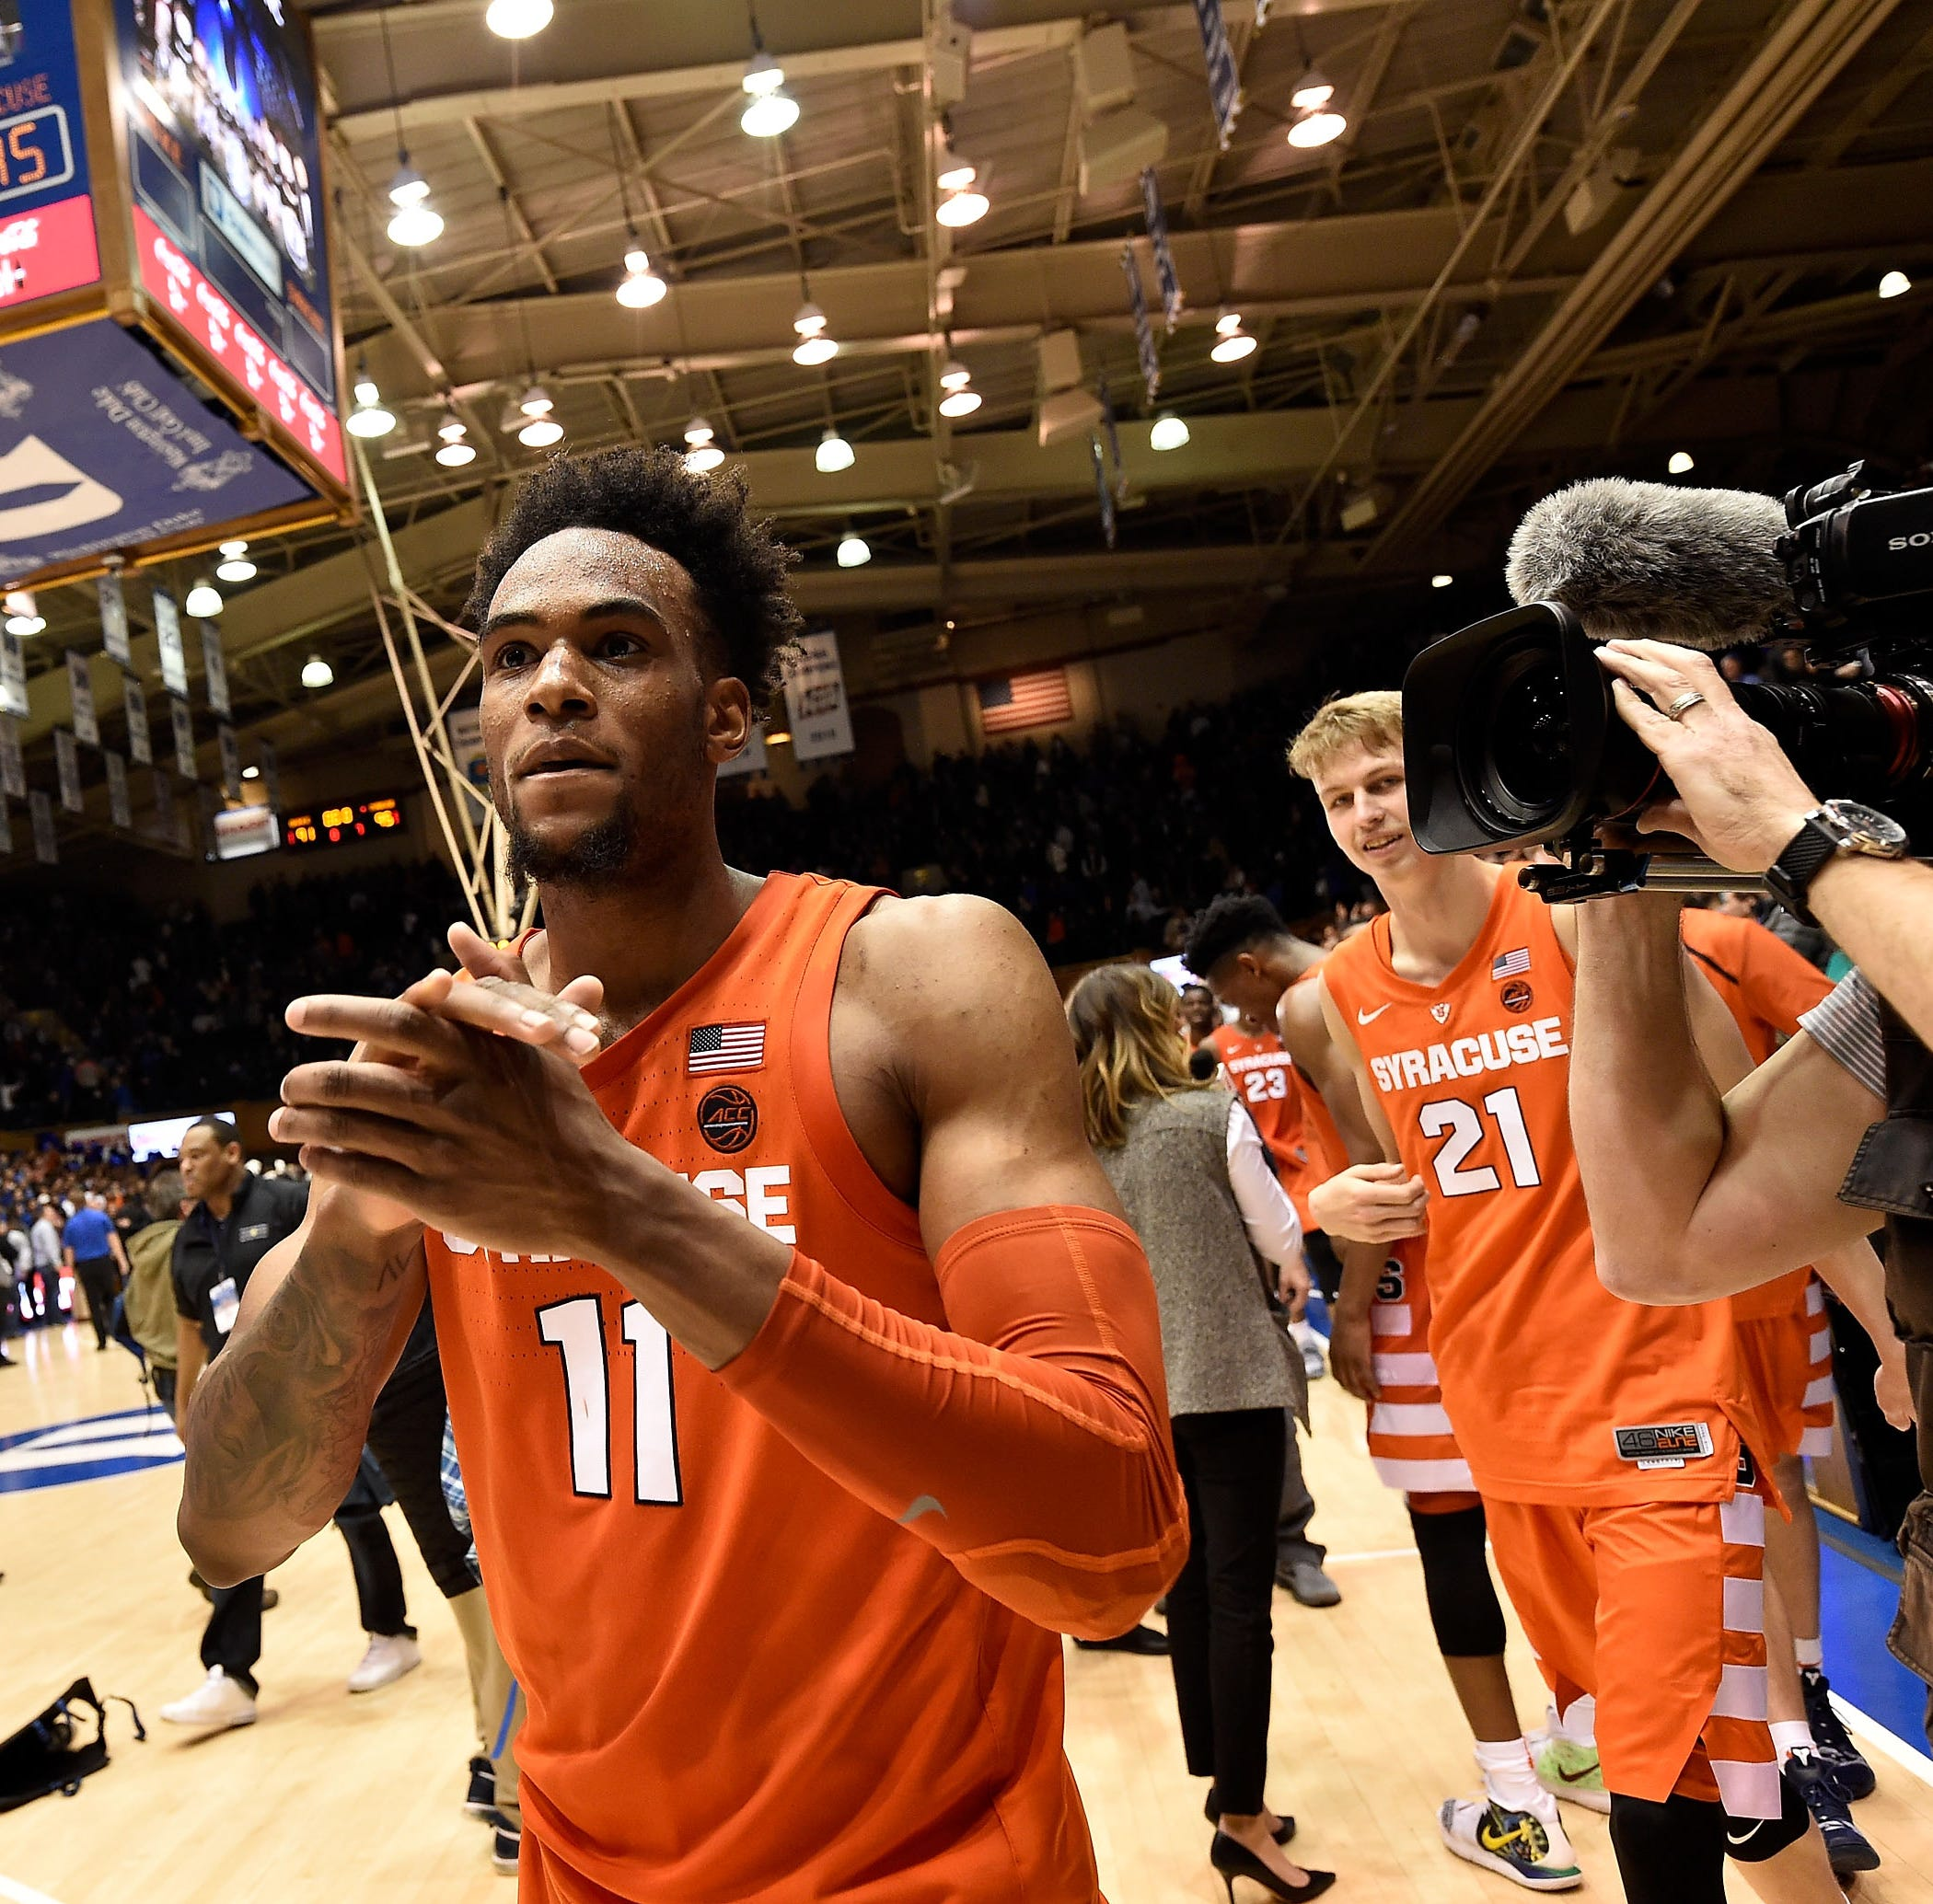 Syracuse upsets No. 1 Duke in overtime at Cameron Indoor Stadium